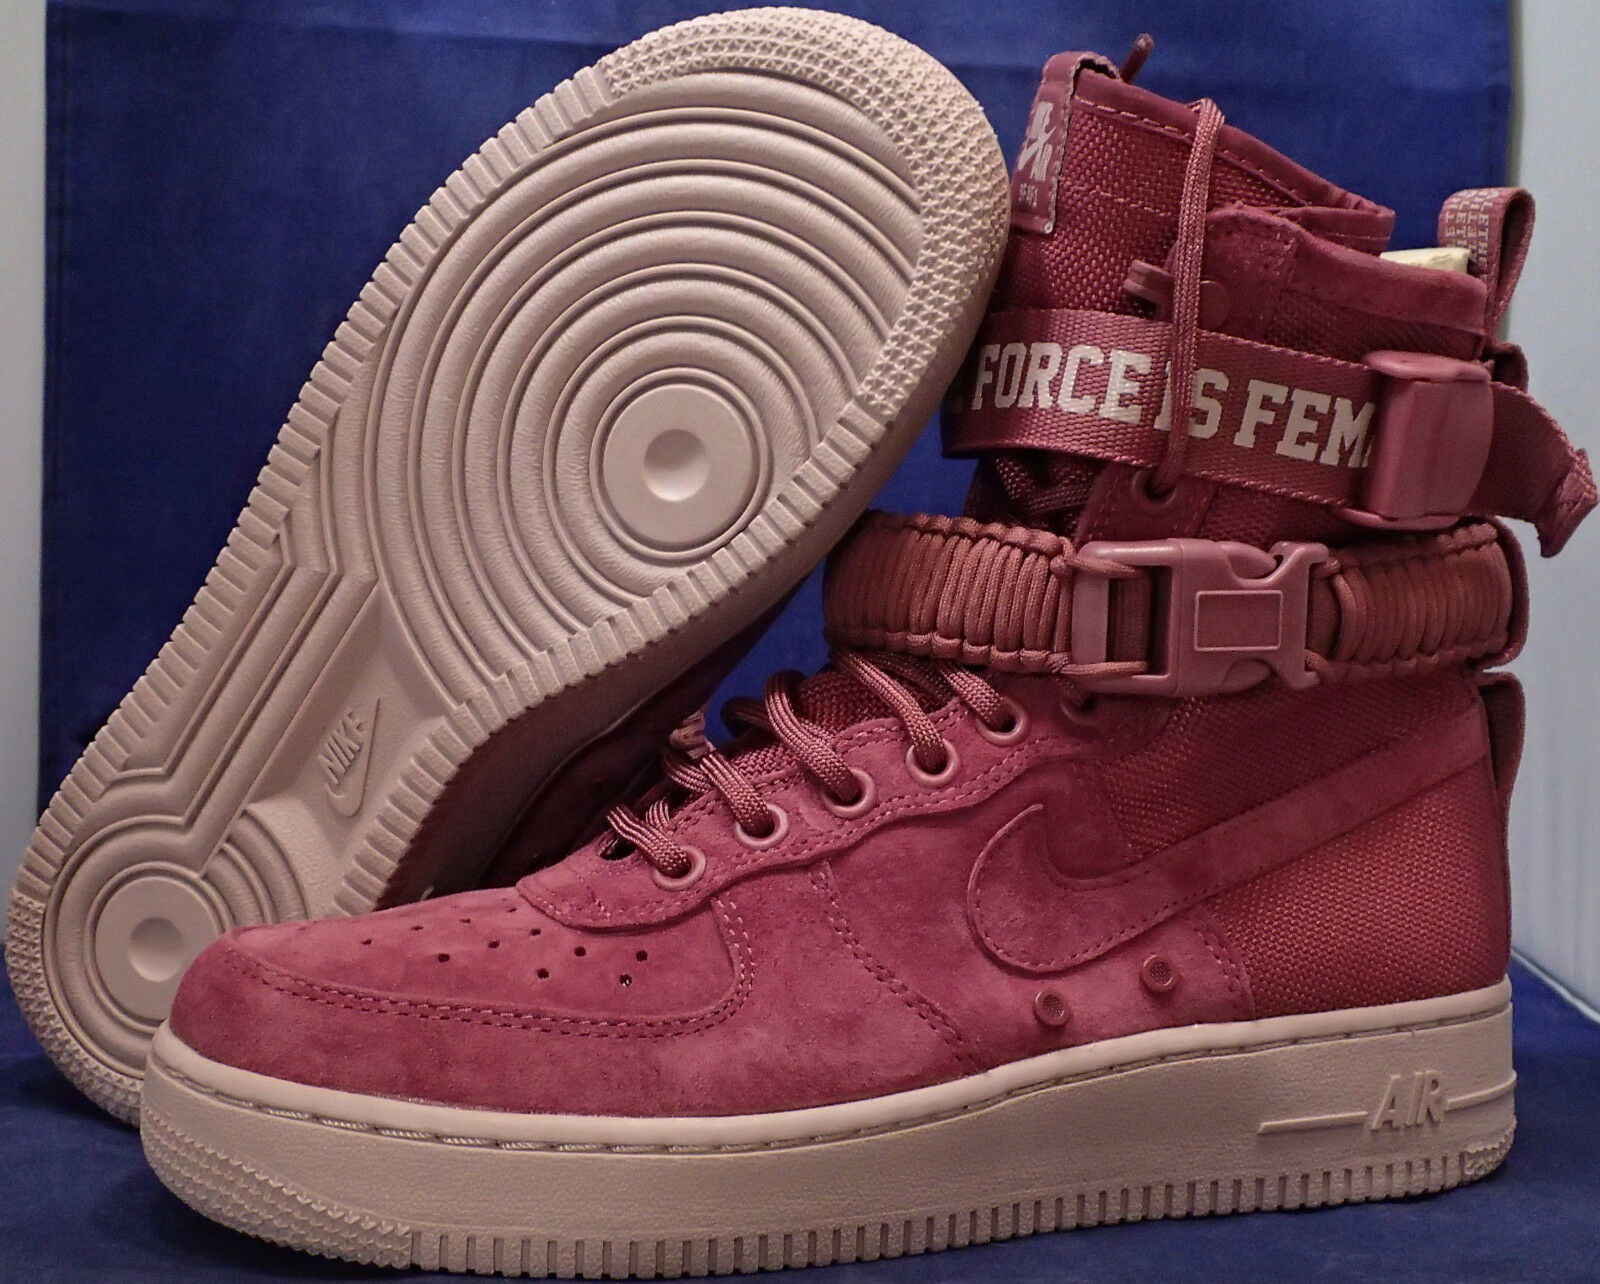 donna Nike SF Air Force 1 The Force is Female Female Female Vintage Wine SZ 7.5 (AJ1700-600) 783158